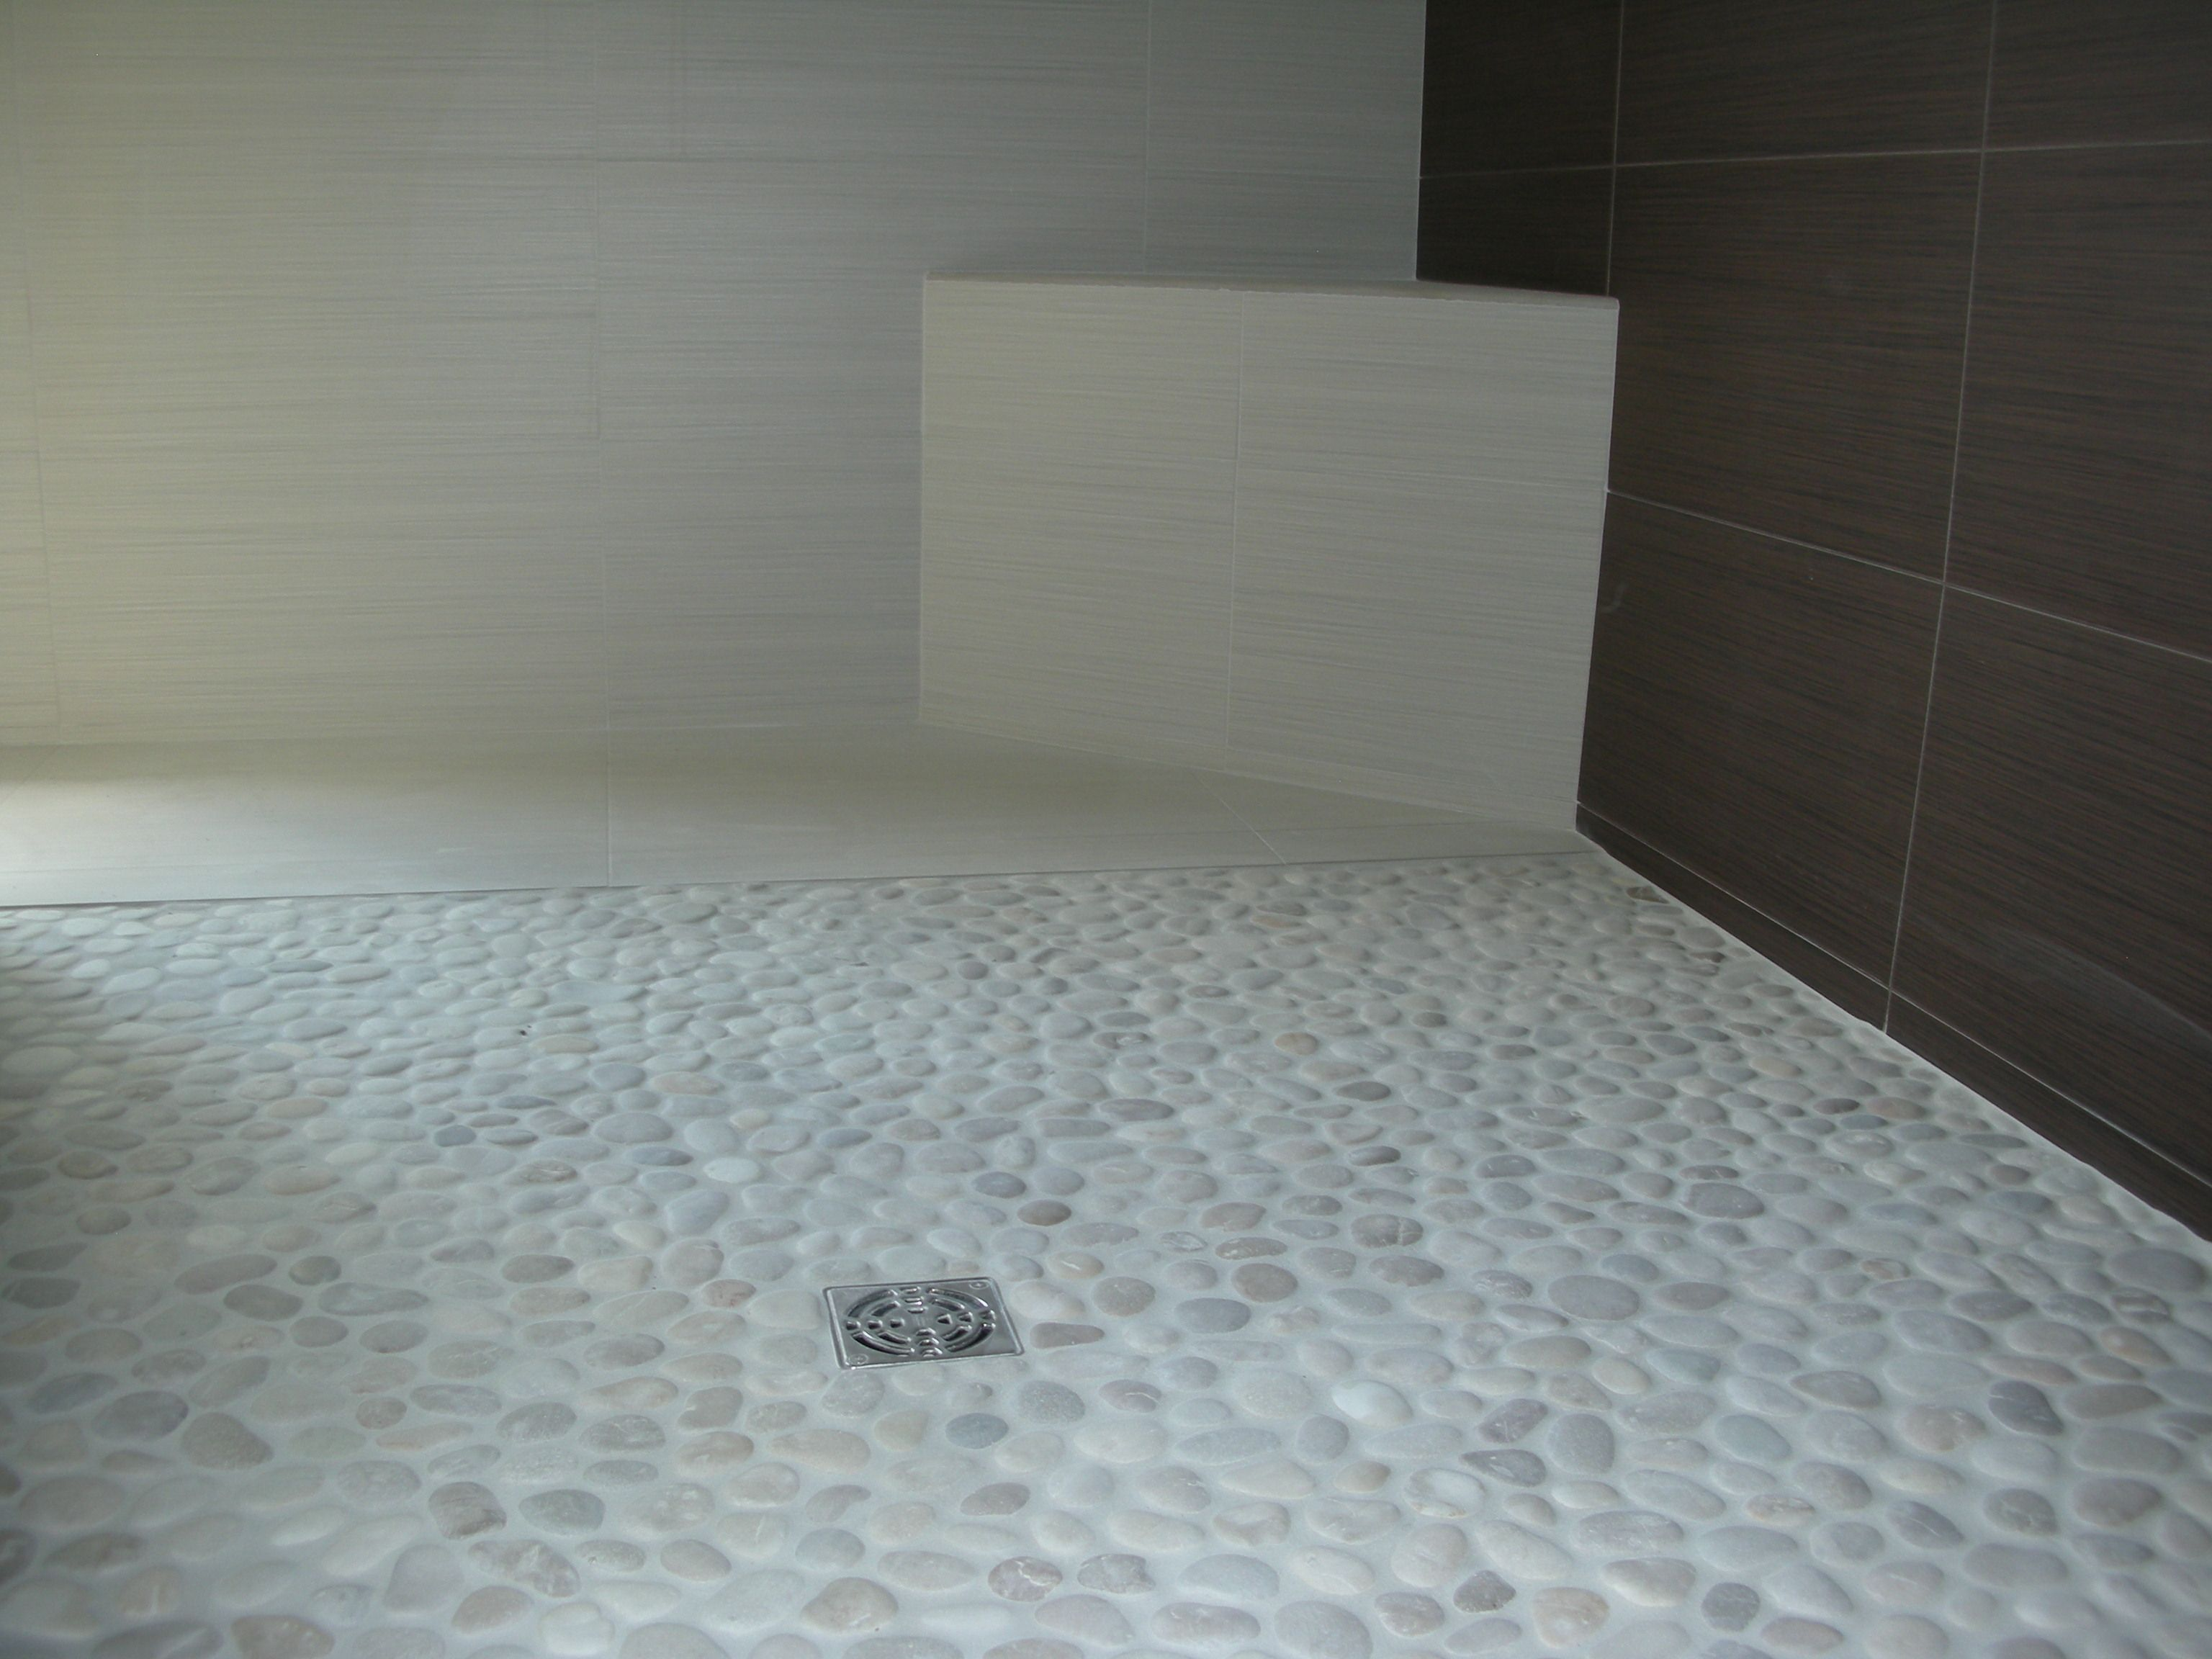 White Pebble Tile | Studio inspiration | Pinterest | White pebbles ...